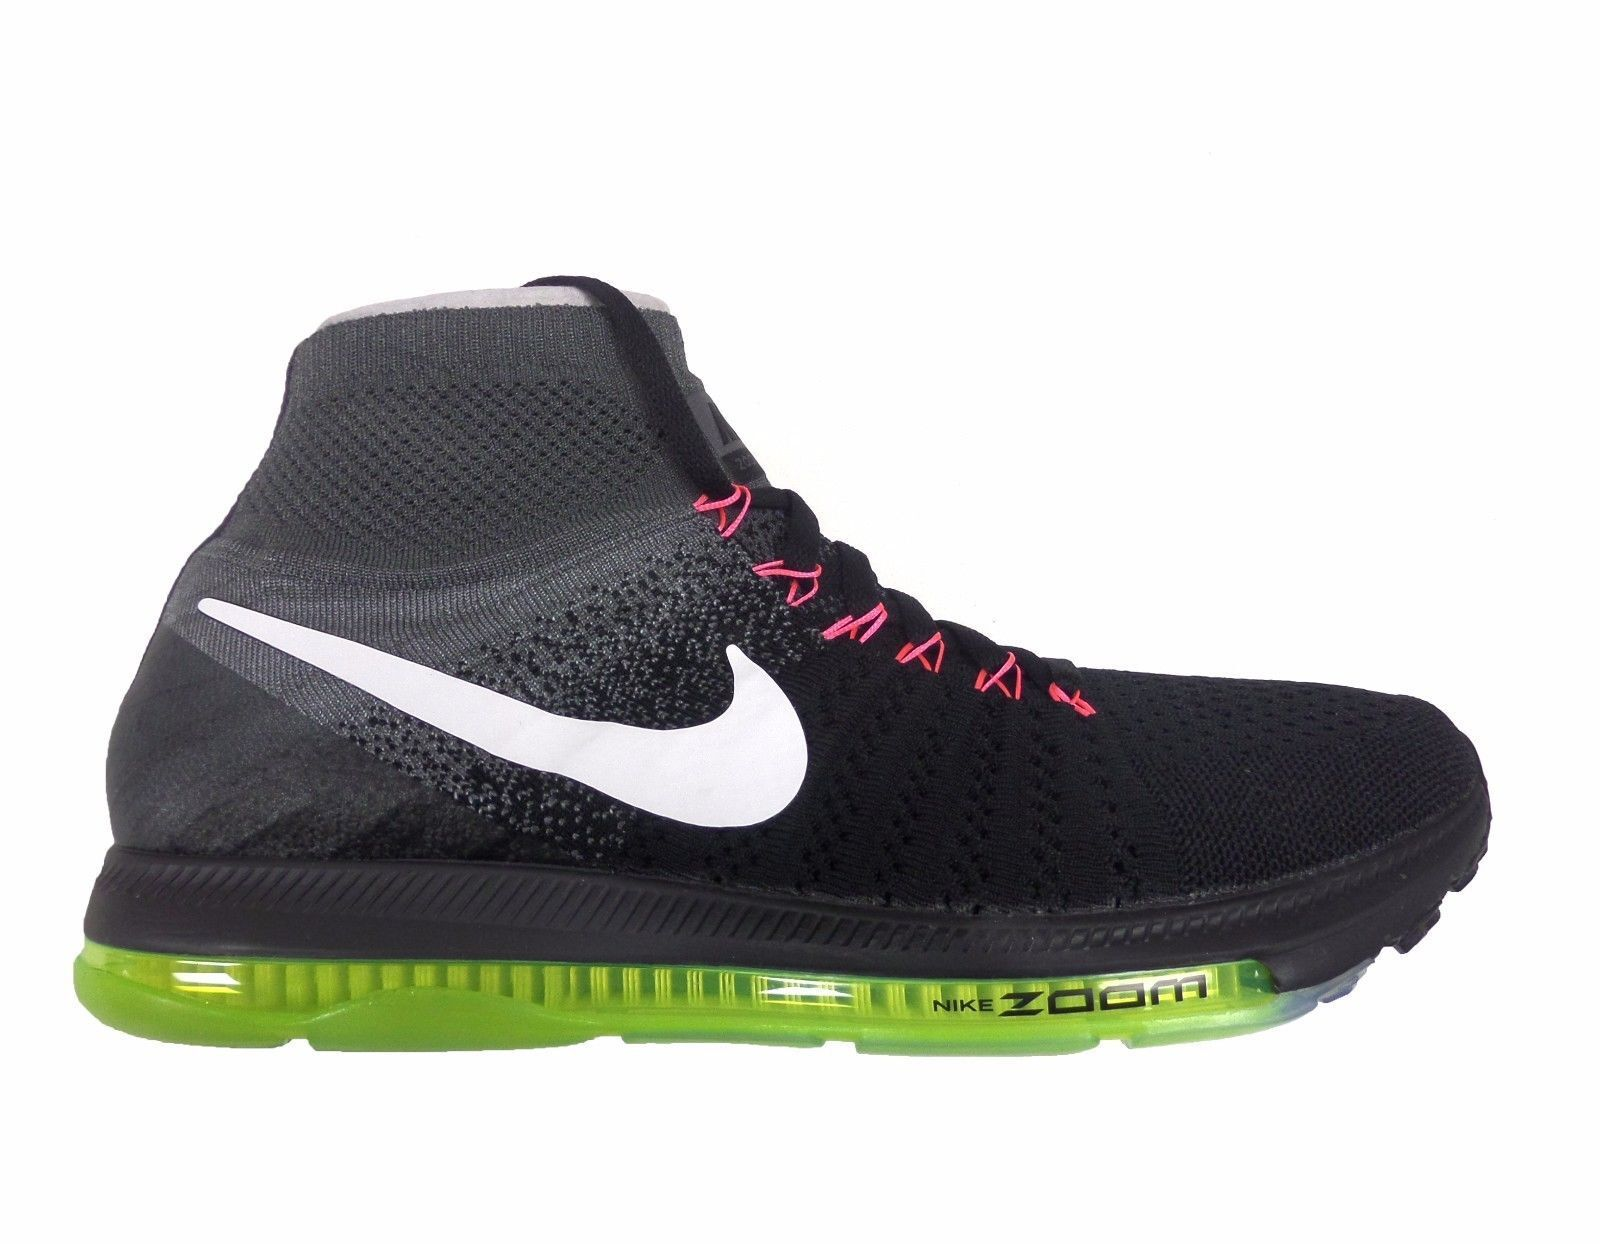 MSRP  200.00 Mens Nike Zoom All Out Flyknit Running shoes Sz 10 844134 002